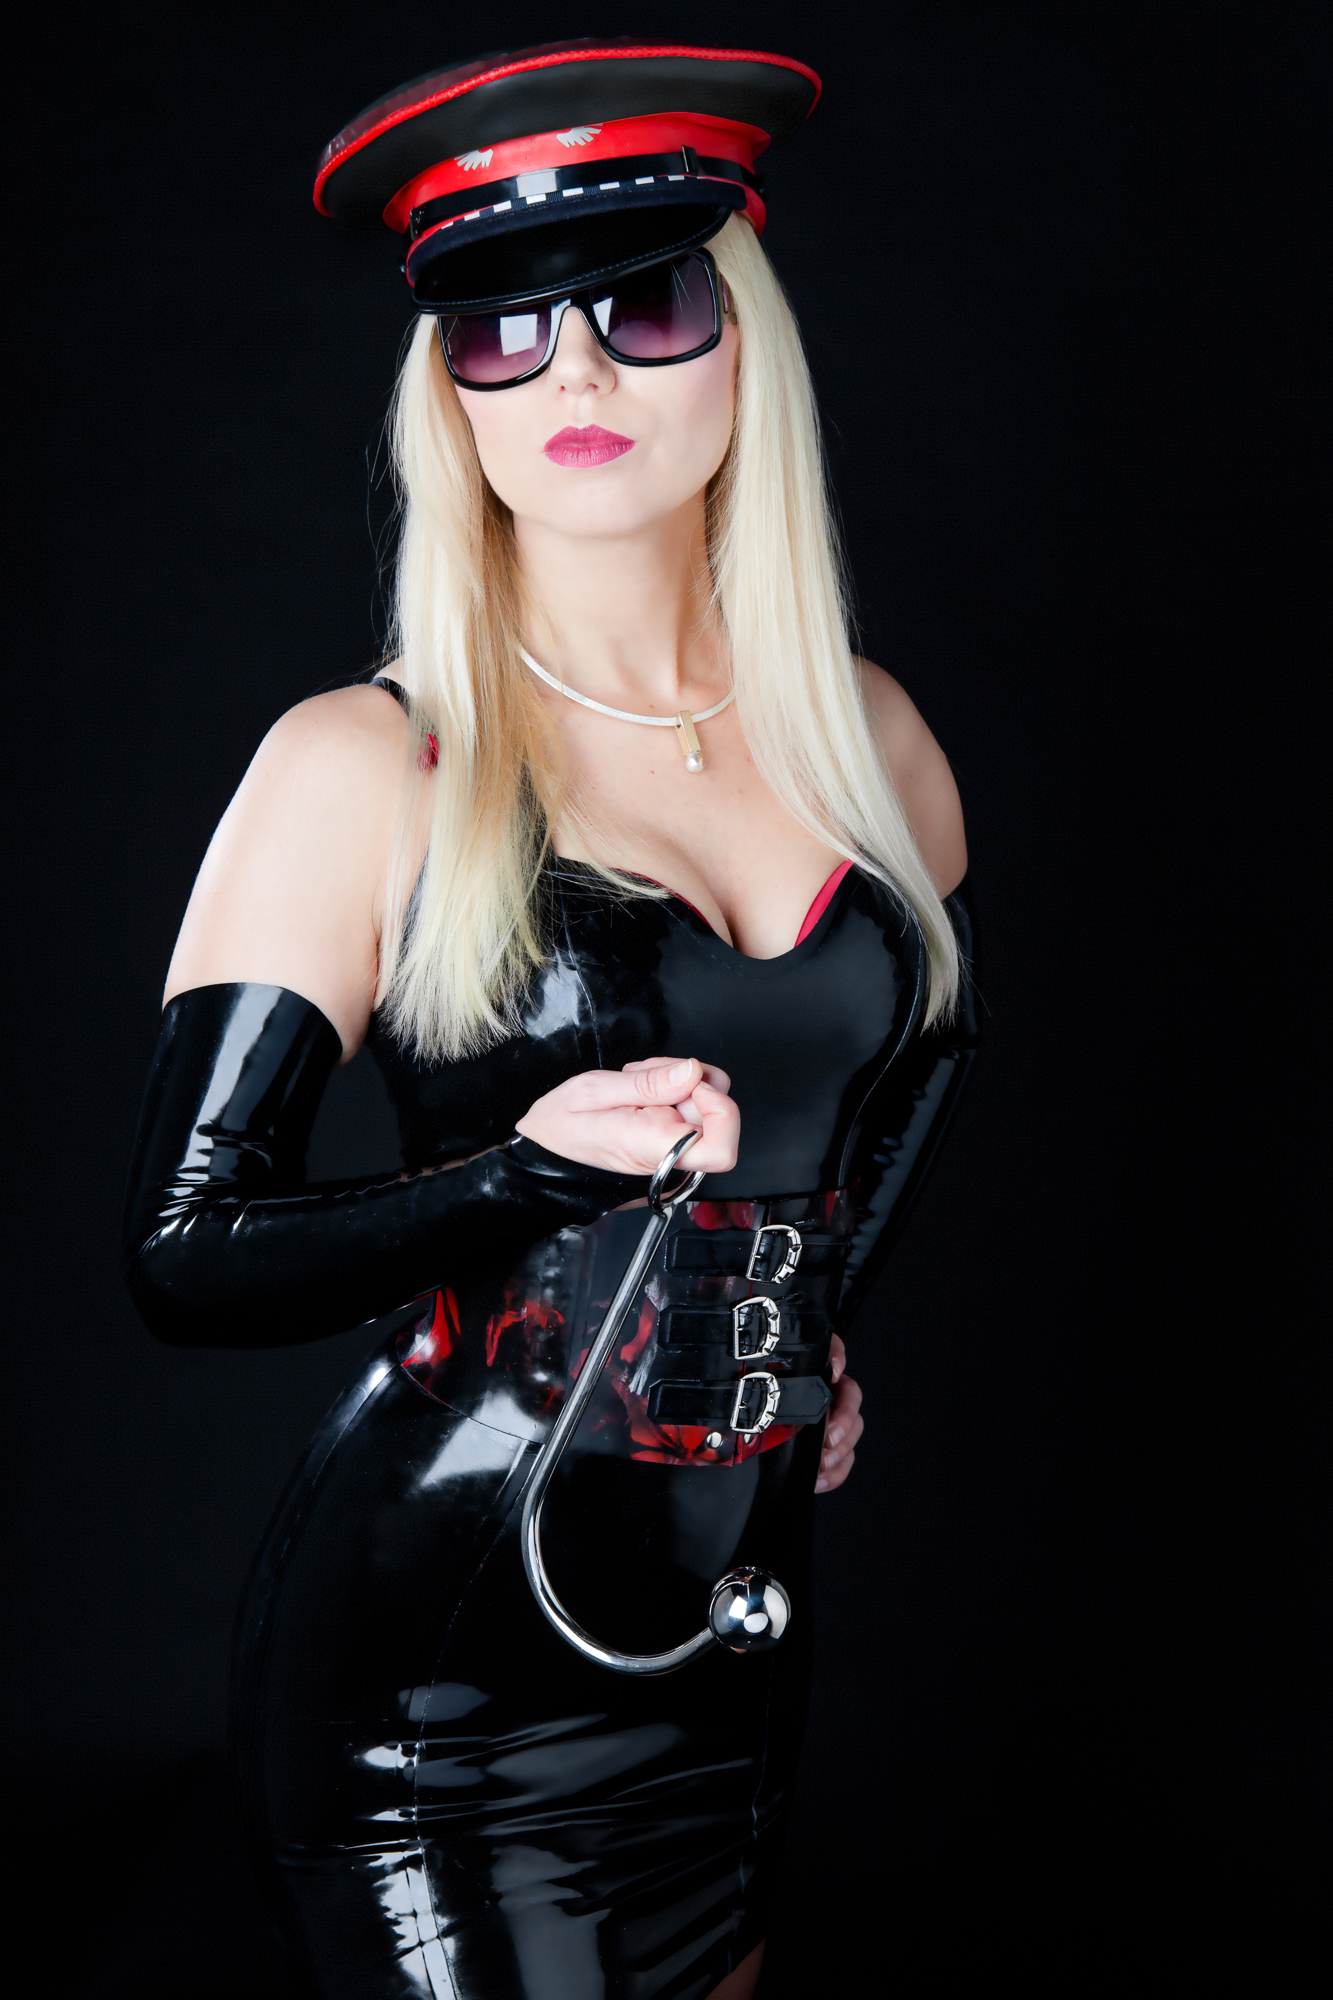 London_Mistress_Wildfire-27